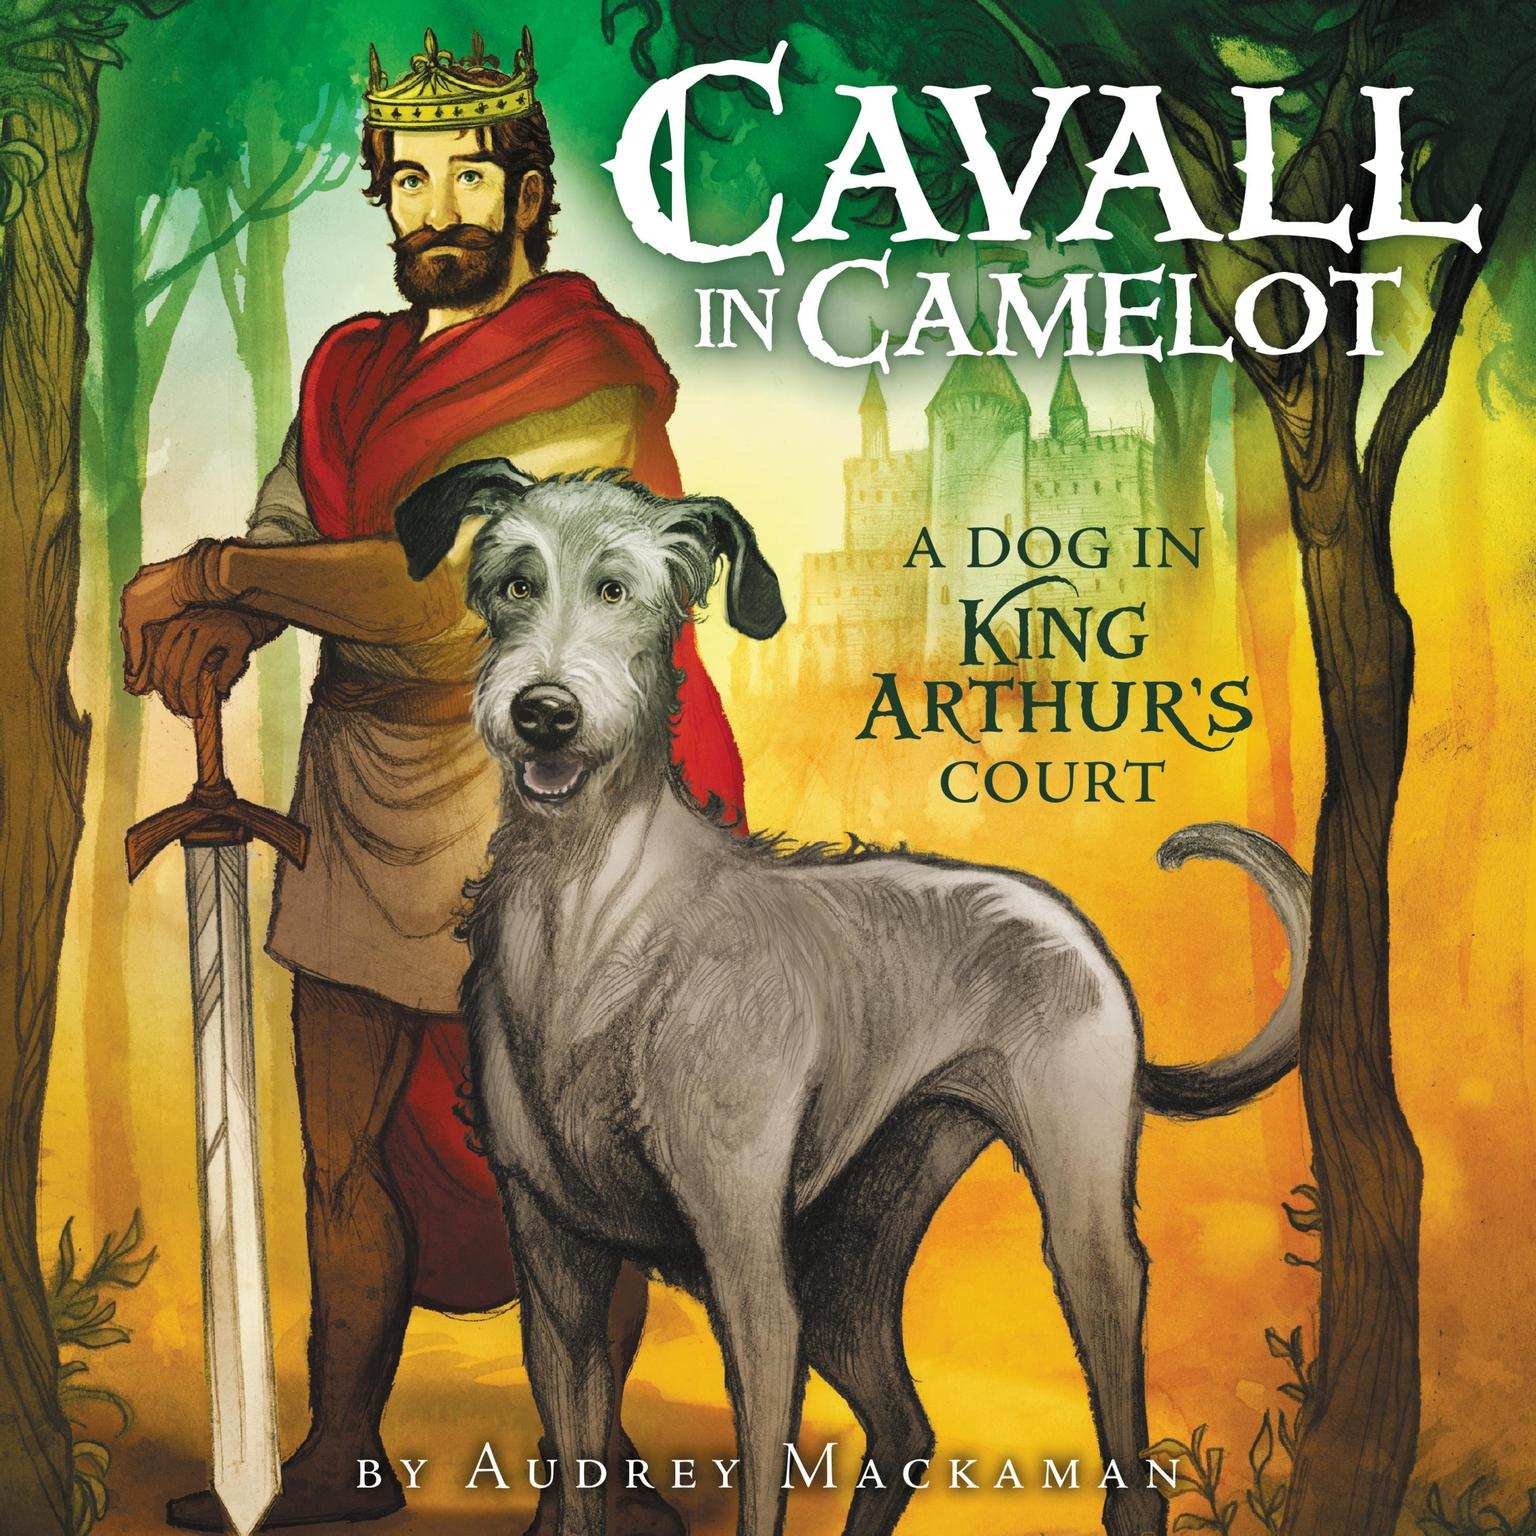 Printable Cavall in Camelot #1: A Dog in King Arthur's Court Audiobook Cover Art